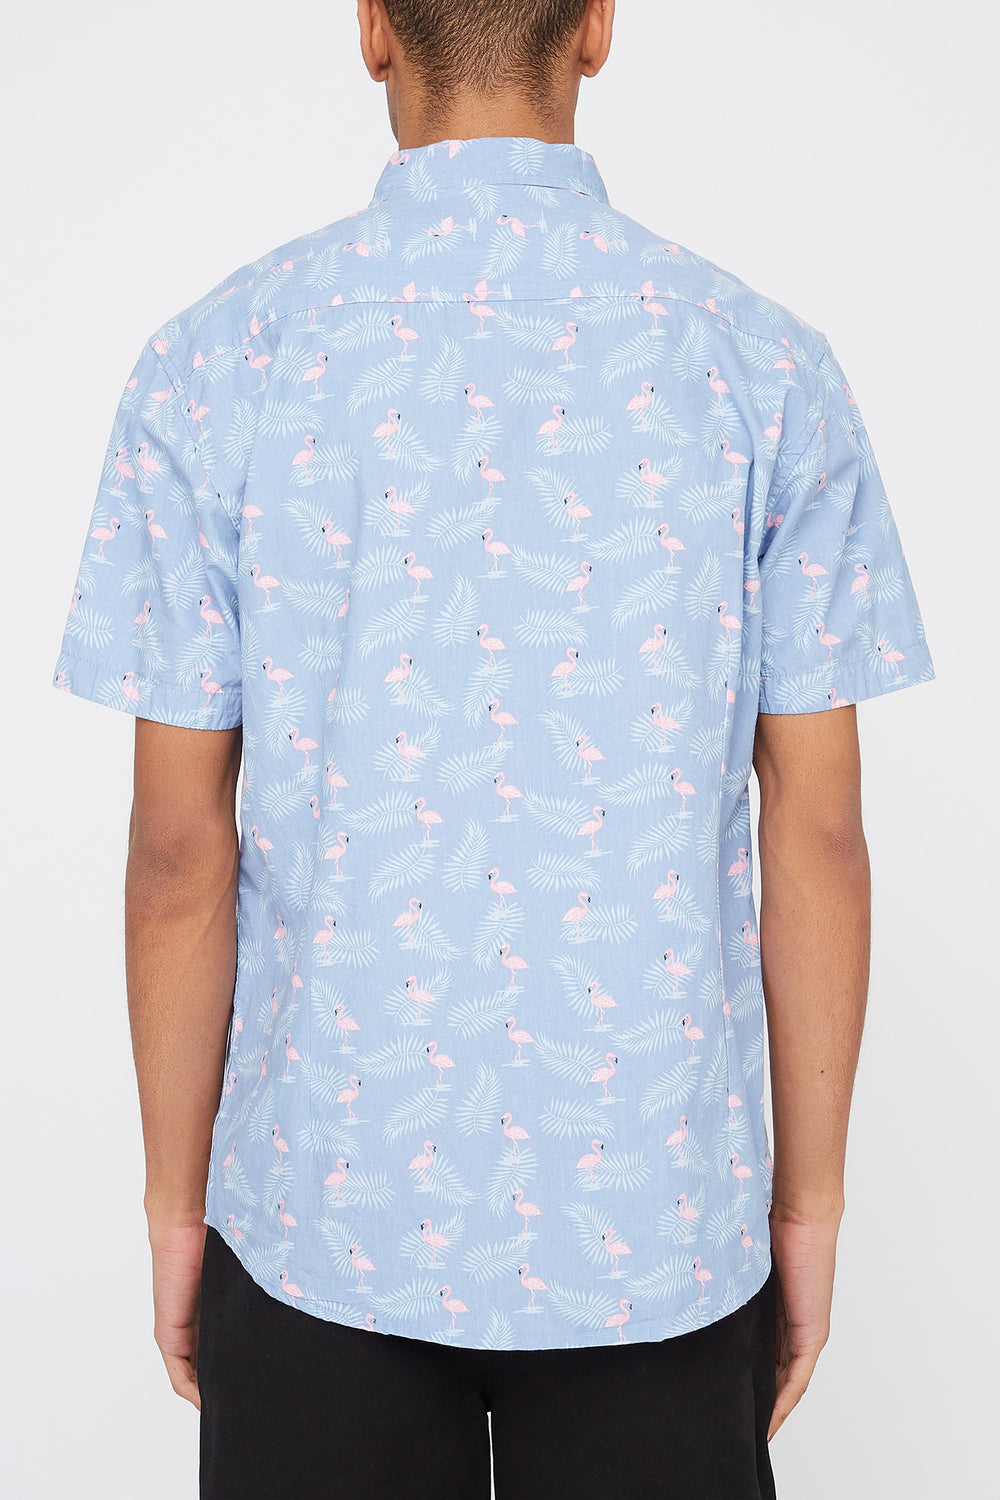 Artistry In Motion Mens Flamingo Print Button-Up Shirt Blue